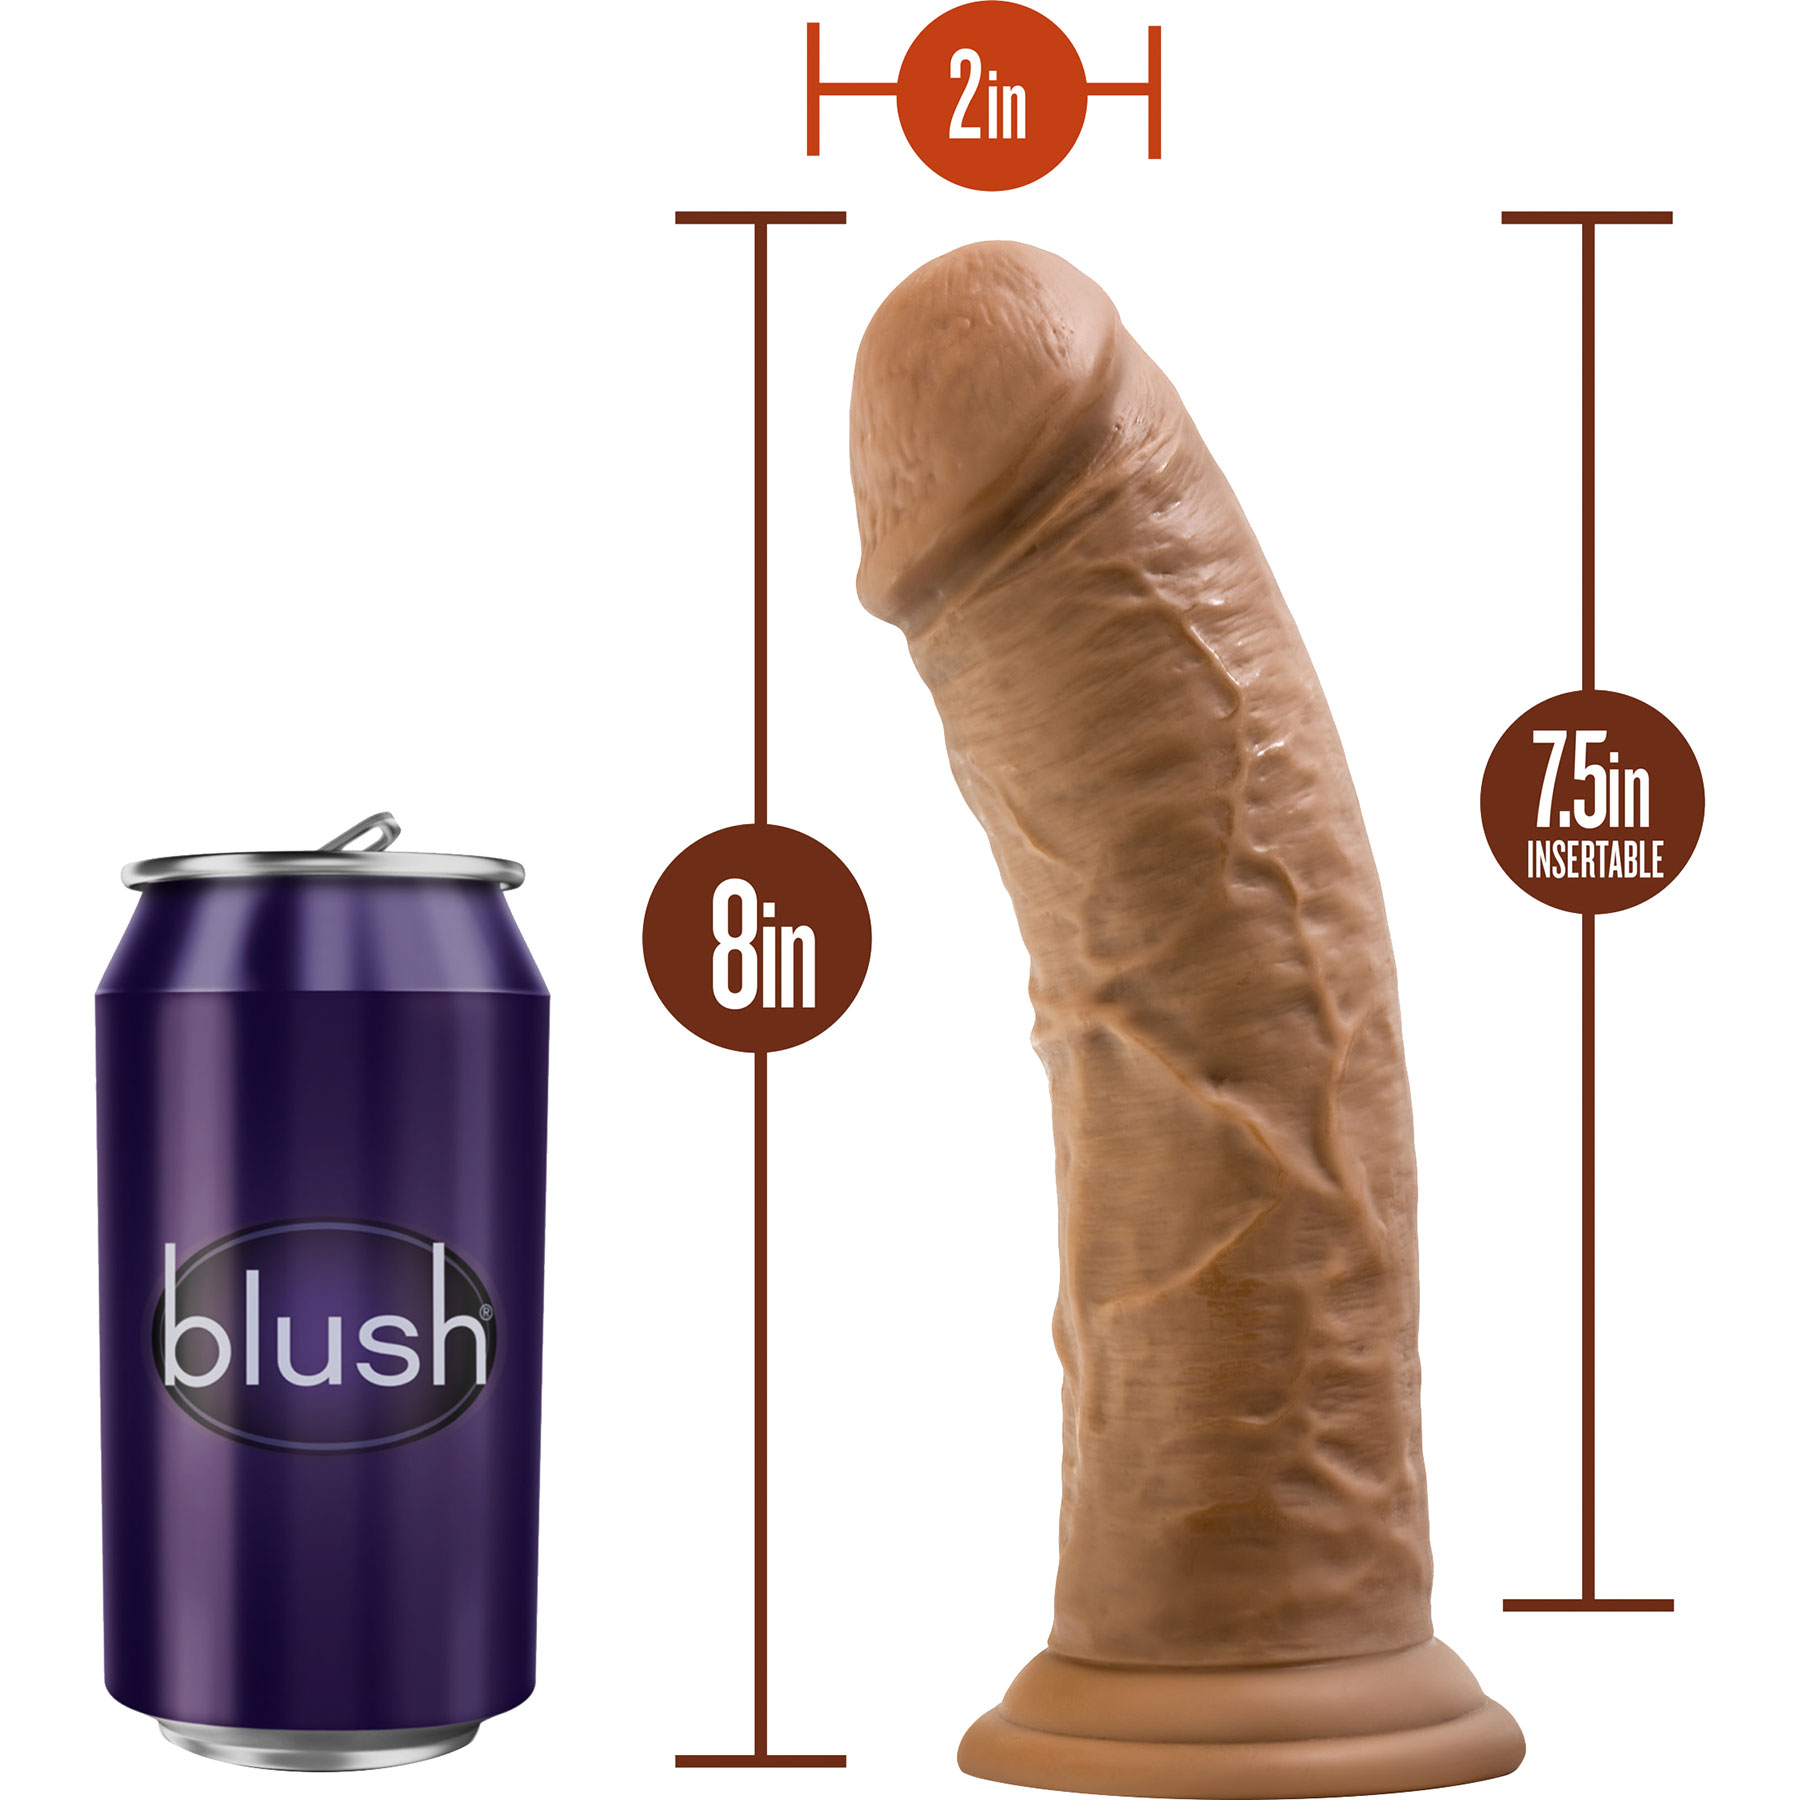 Dr. Skin 8 Inch Basic Realistic Dildo With Suction Cup by Blush - Measurements